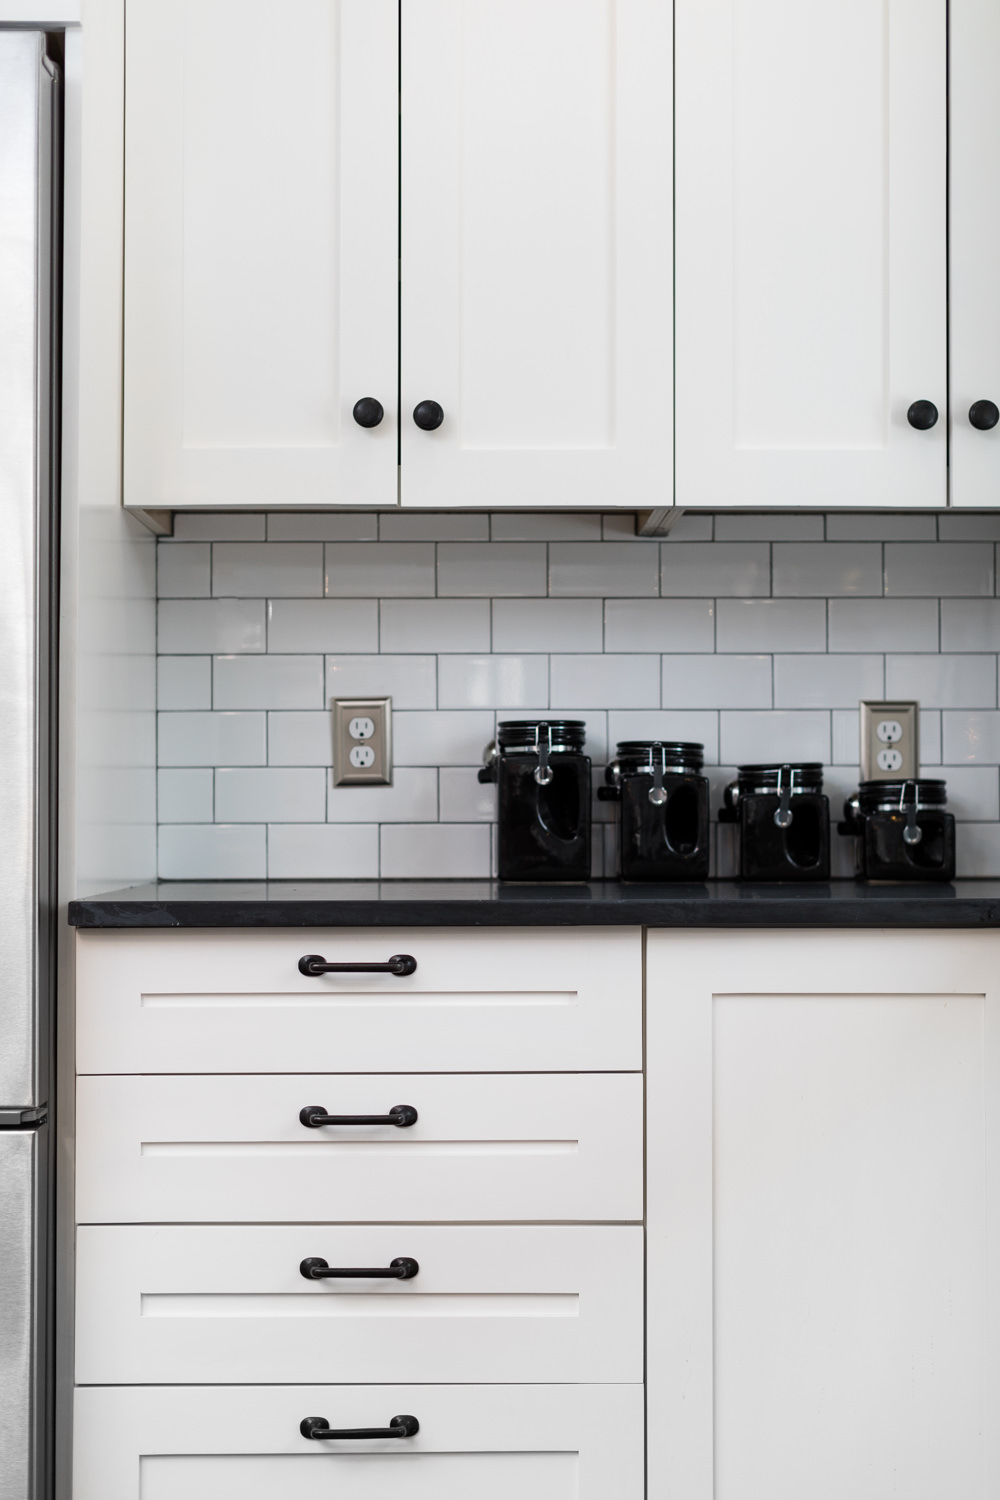 Photo of recessed panel cabinets in a Vermont kitchen remodel taken by Vermont photographer Stina Booth